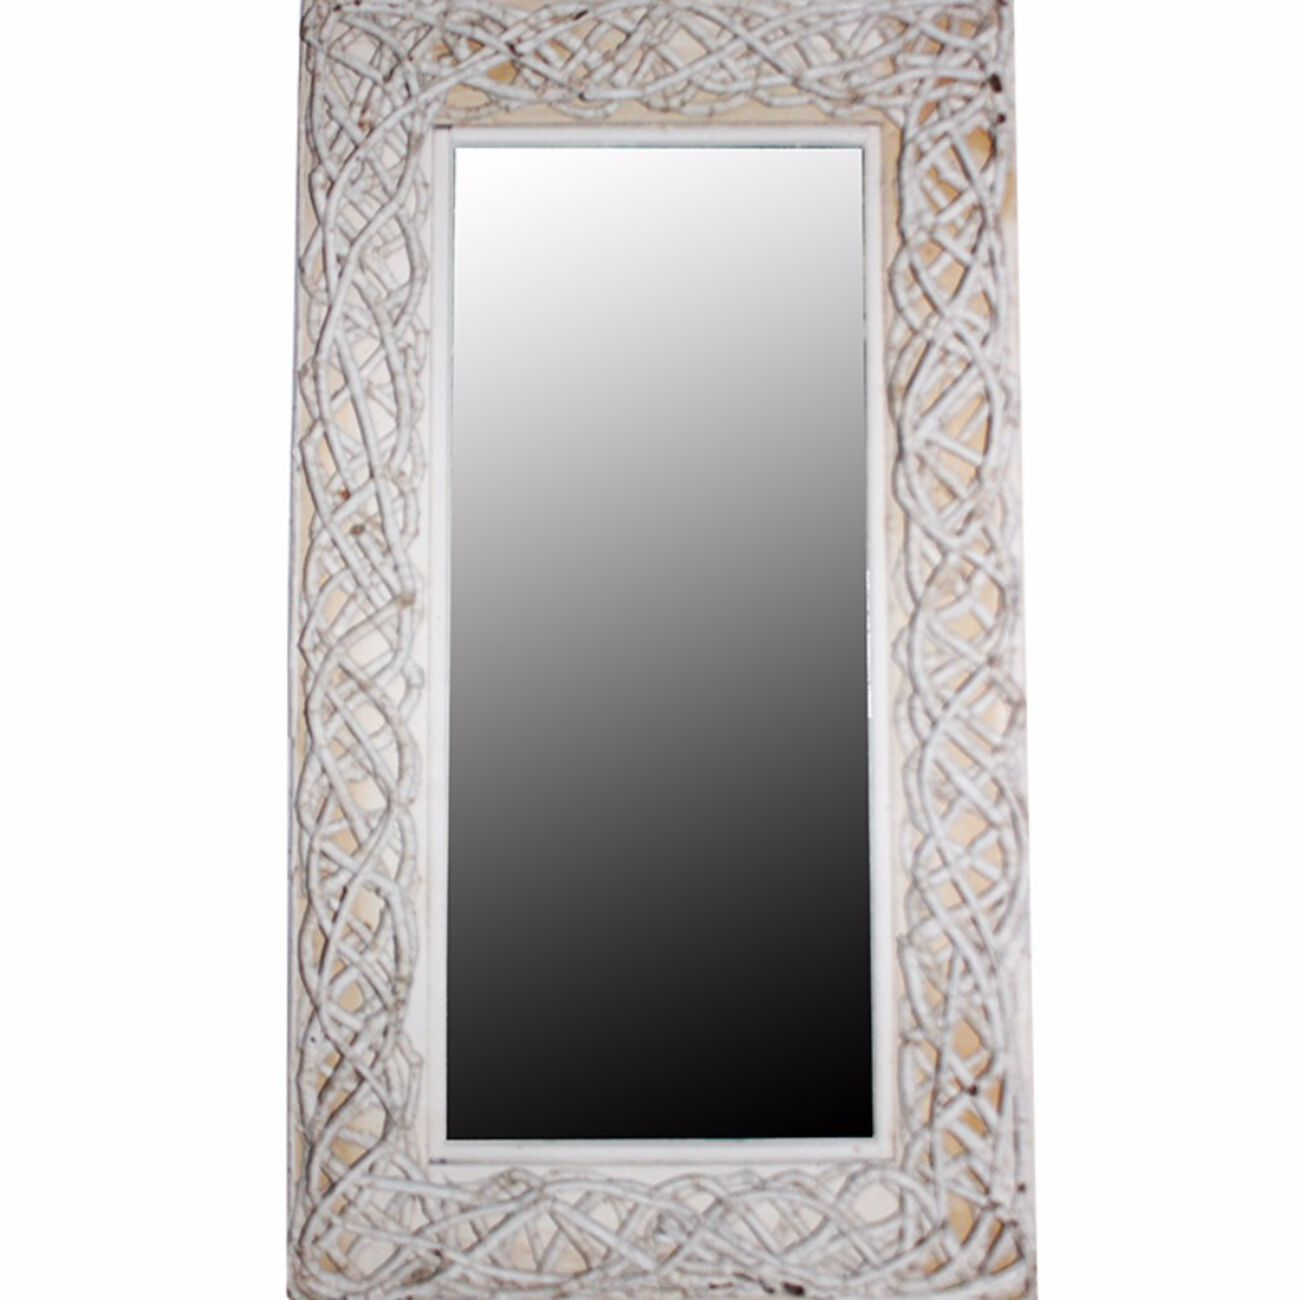 Mirror With Rattan Frame, White